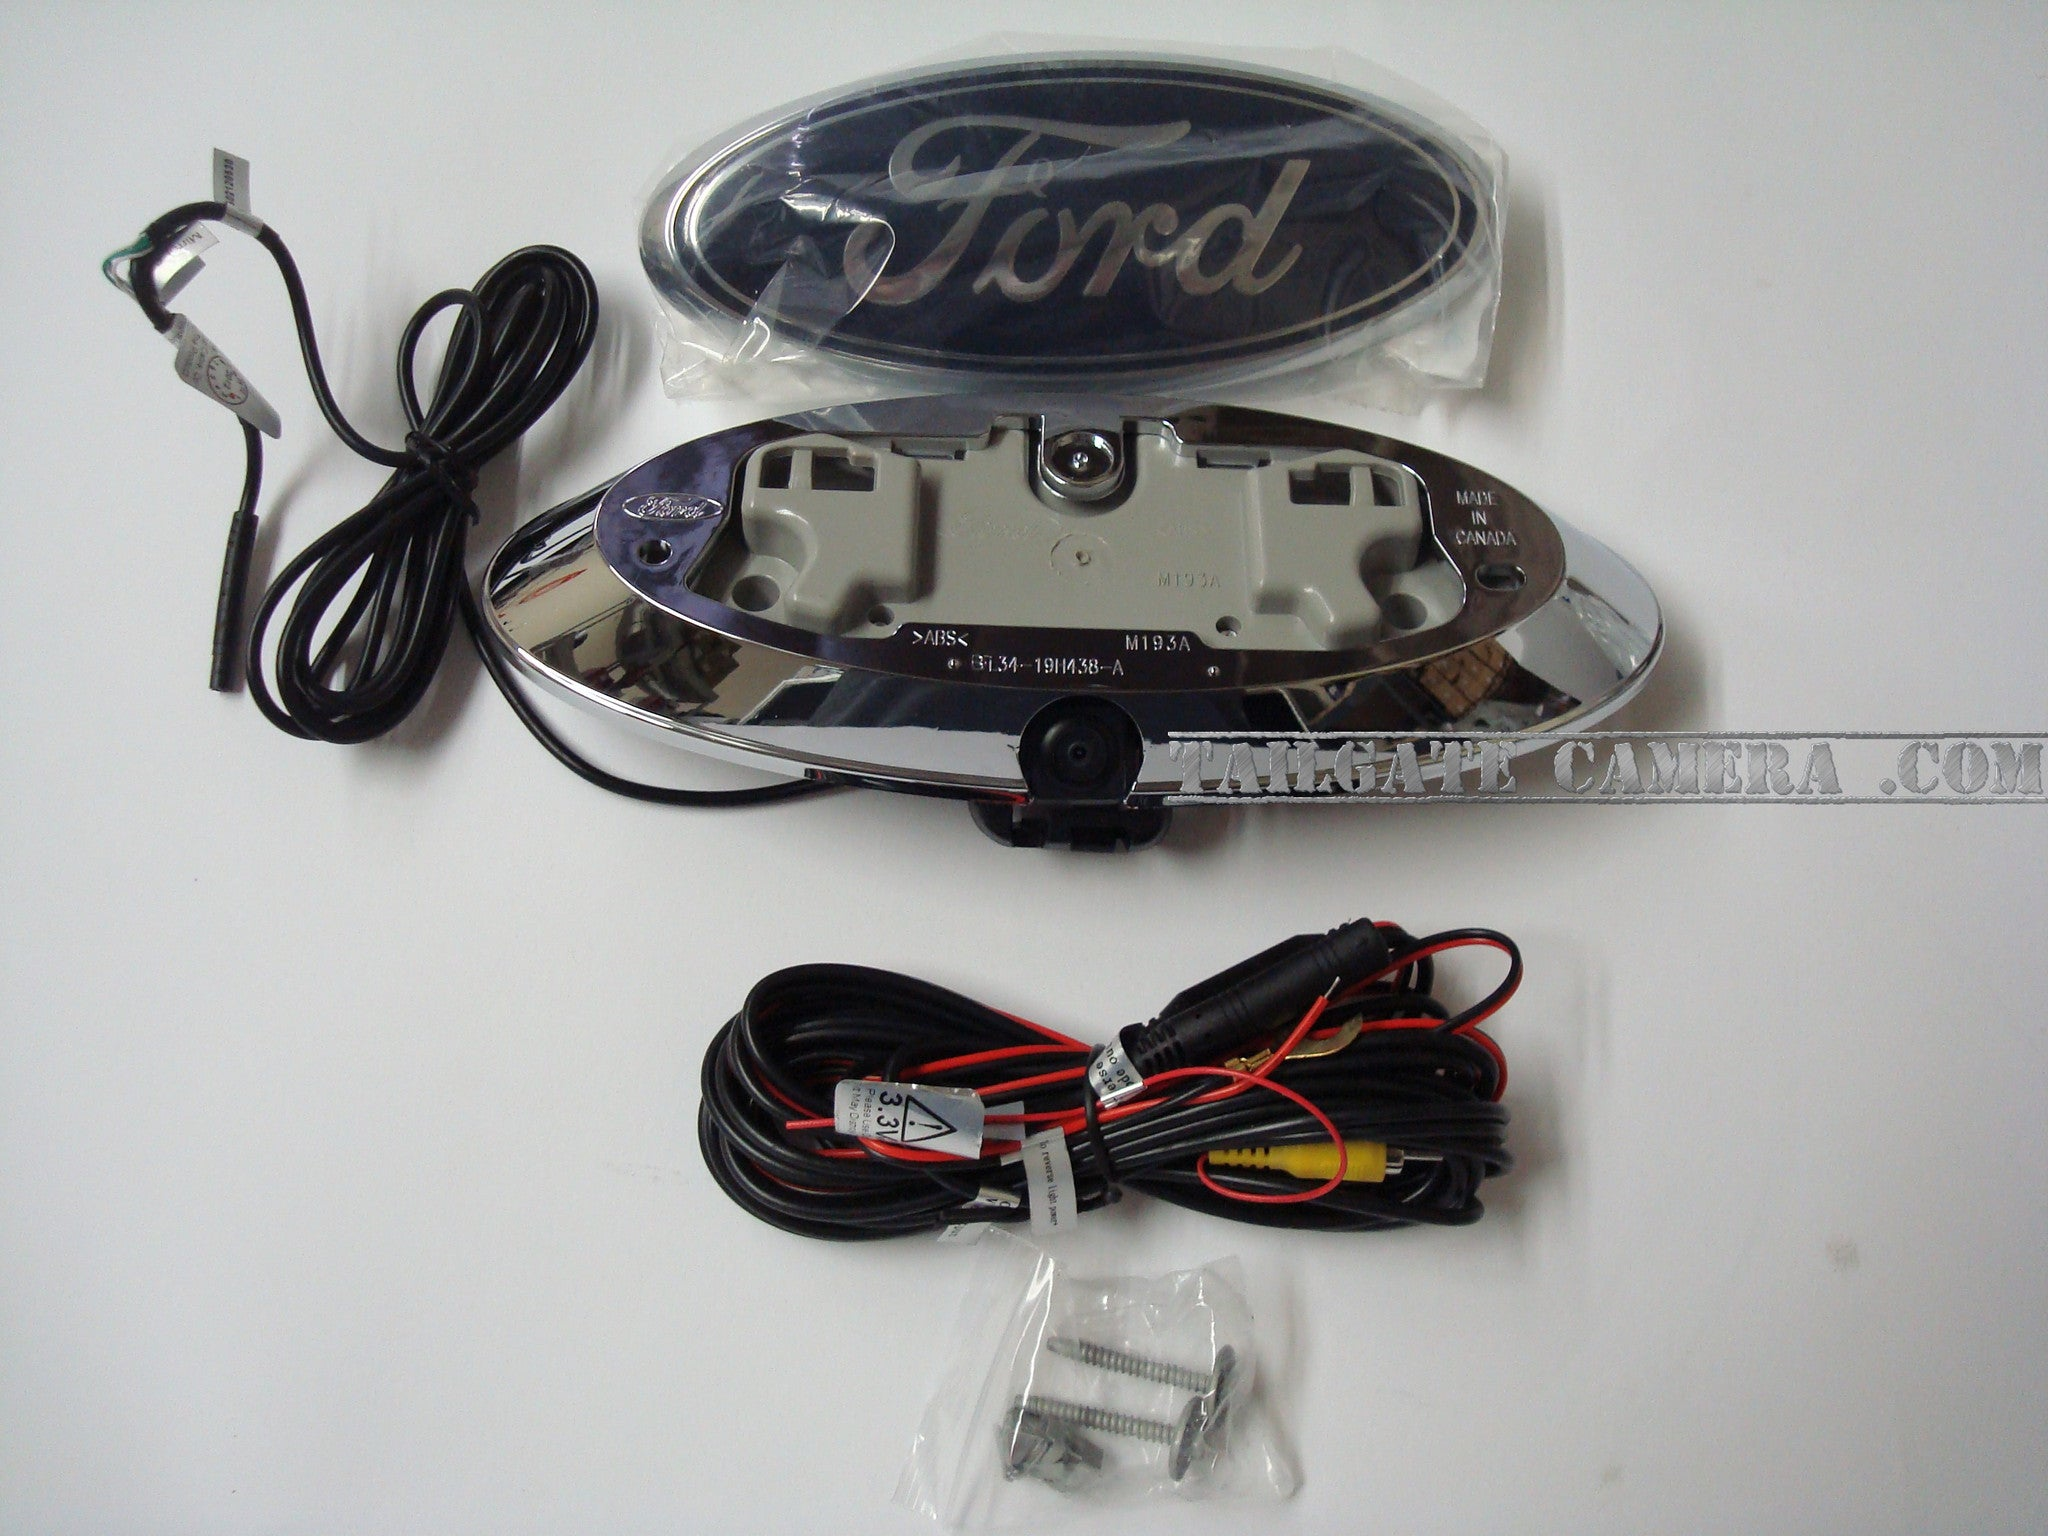 dsc1492?v=1361385570 ford,f150,tailgate,emblem,camera,ford,f250,tailgate,camera,f350 2012 Ford F350 Fuse Diagram at gsmx.co